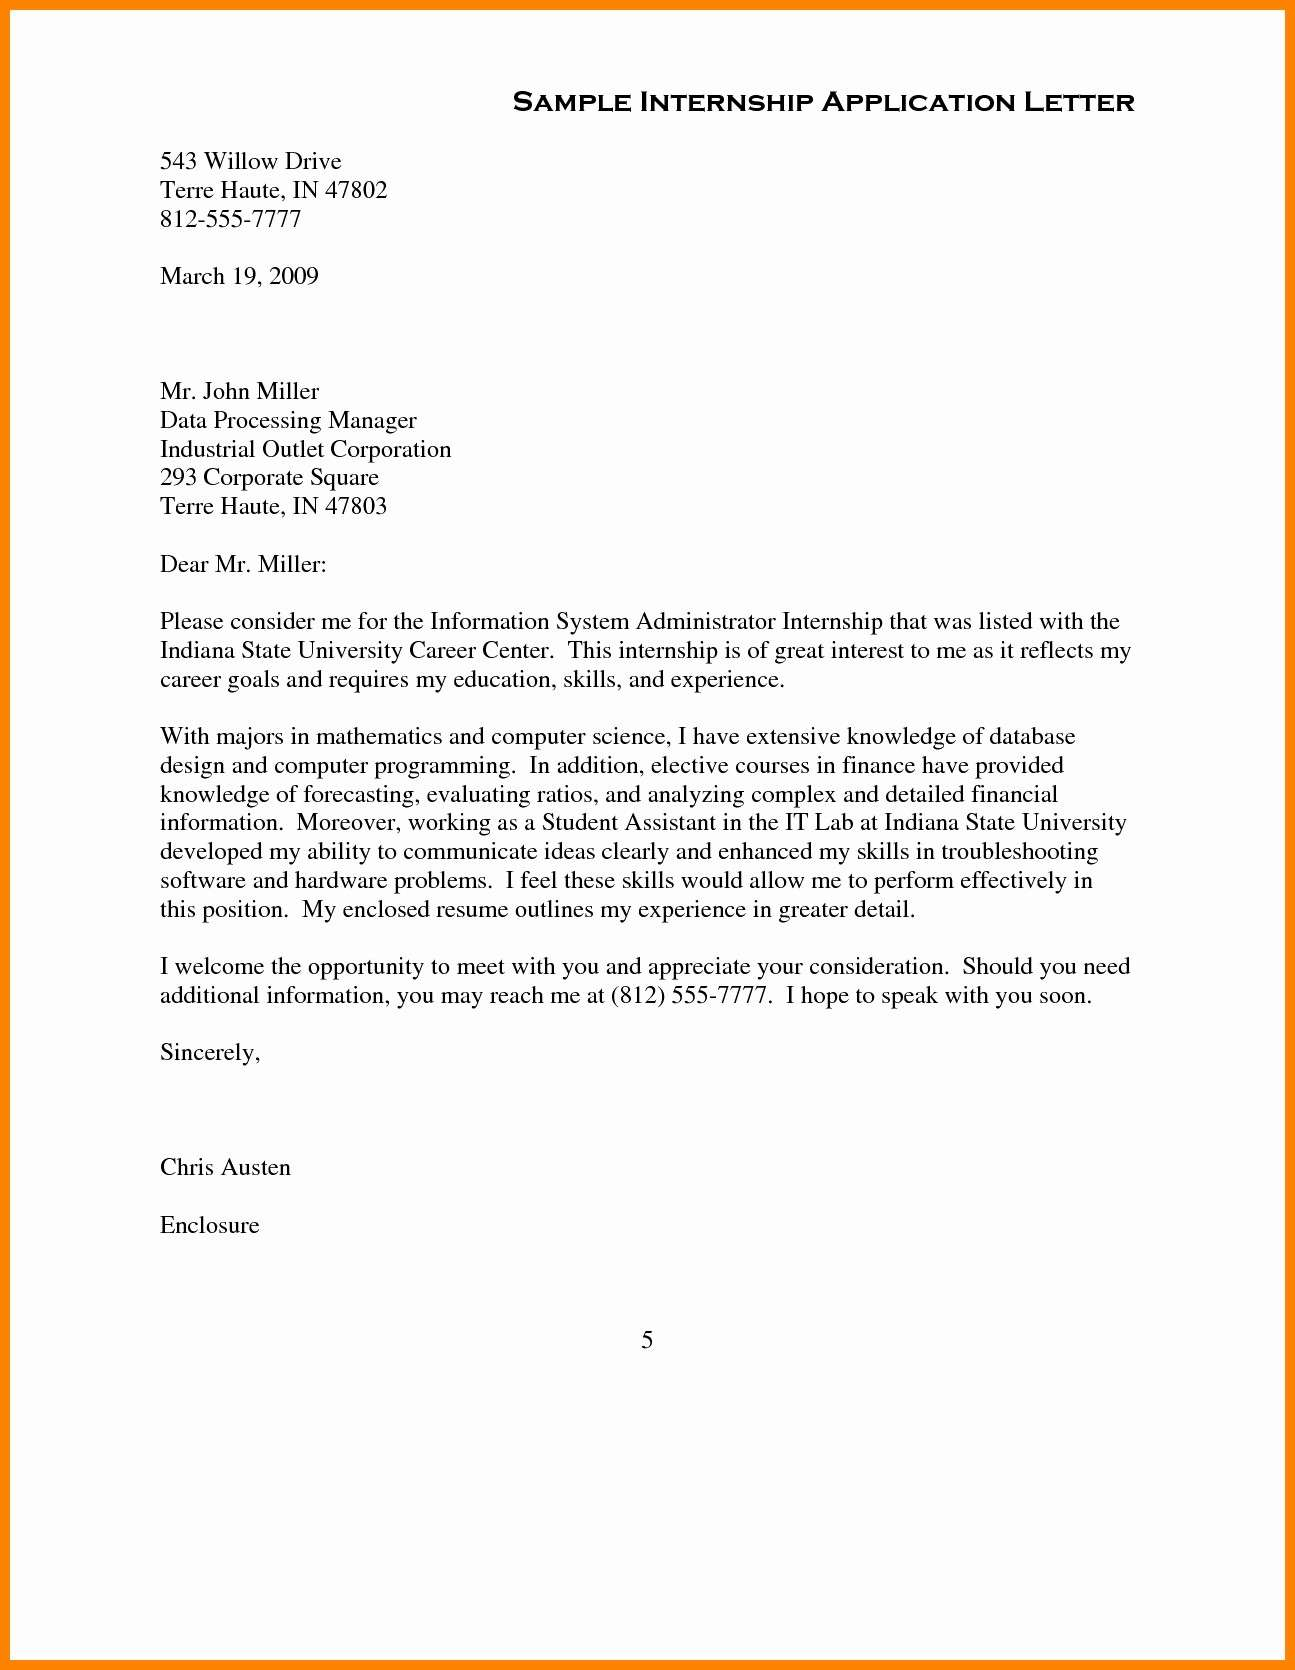 Internship Cover Letter Template - Template Cover Letter New Cover Letter Examples for Internship